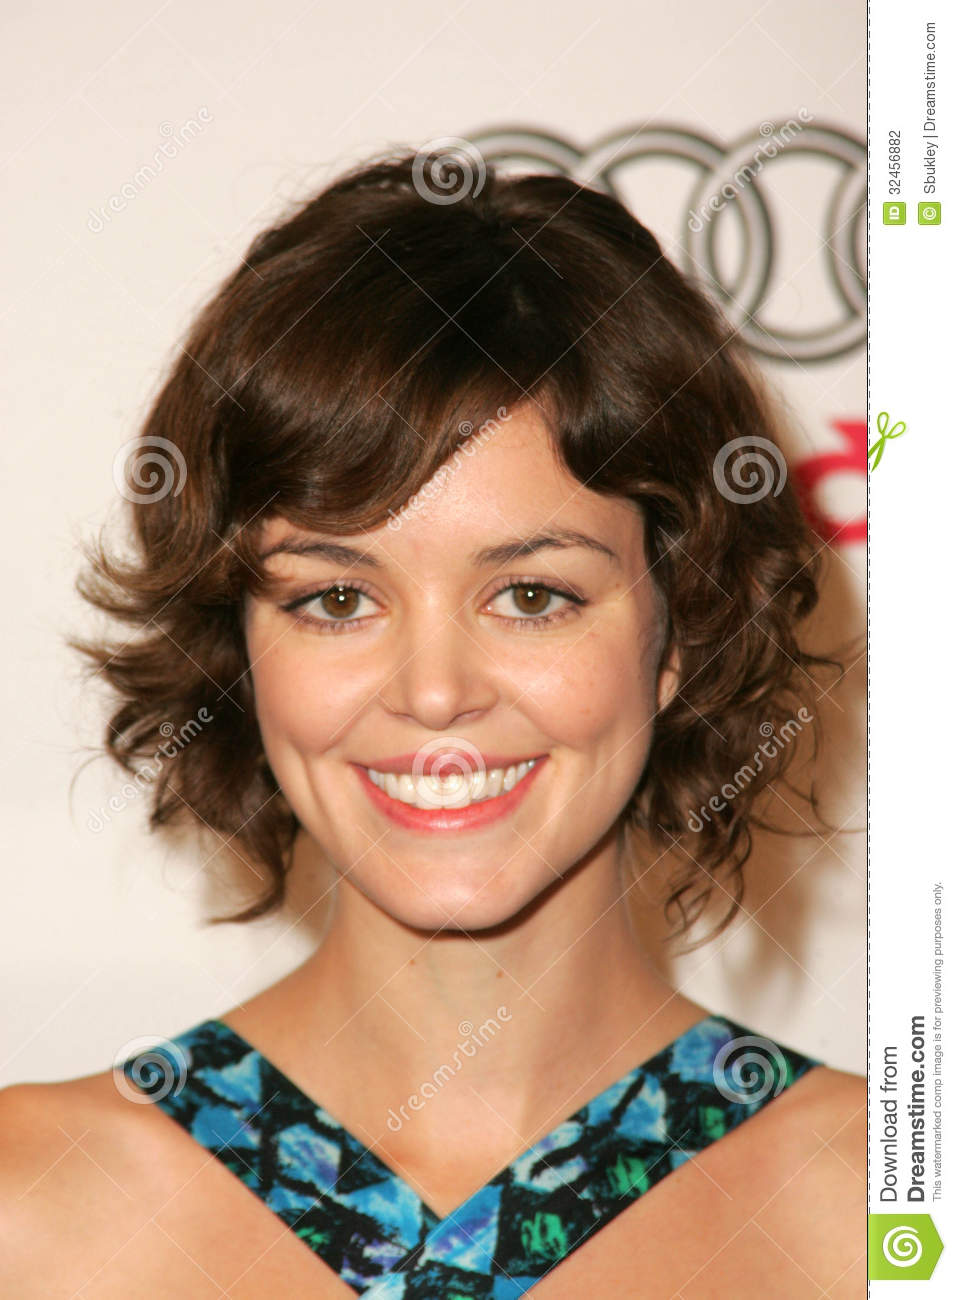 nora zehetner height